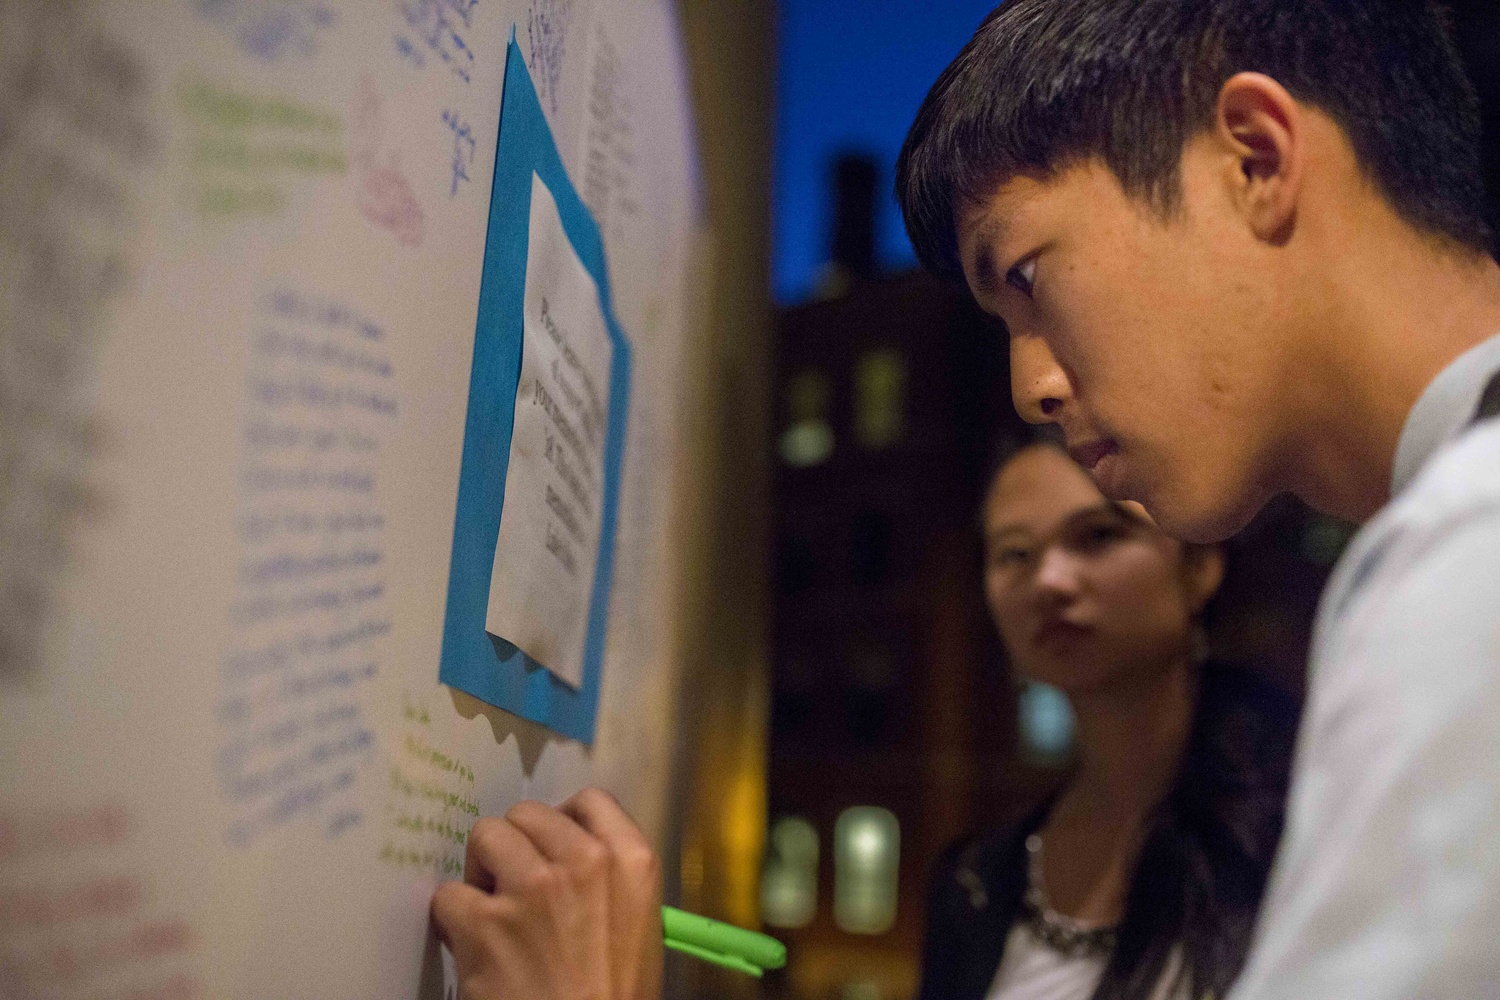 Molly J. Zhao '17, left, looks on as Reece V. Akana '17, right, writes a message on a board outside Memorial Church to Luke Z. Tang '18, who died last Saturday. On Wednesday, students, faculty, and family members gathered in Memorial Church to commemorate Tang.